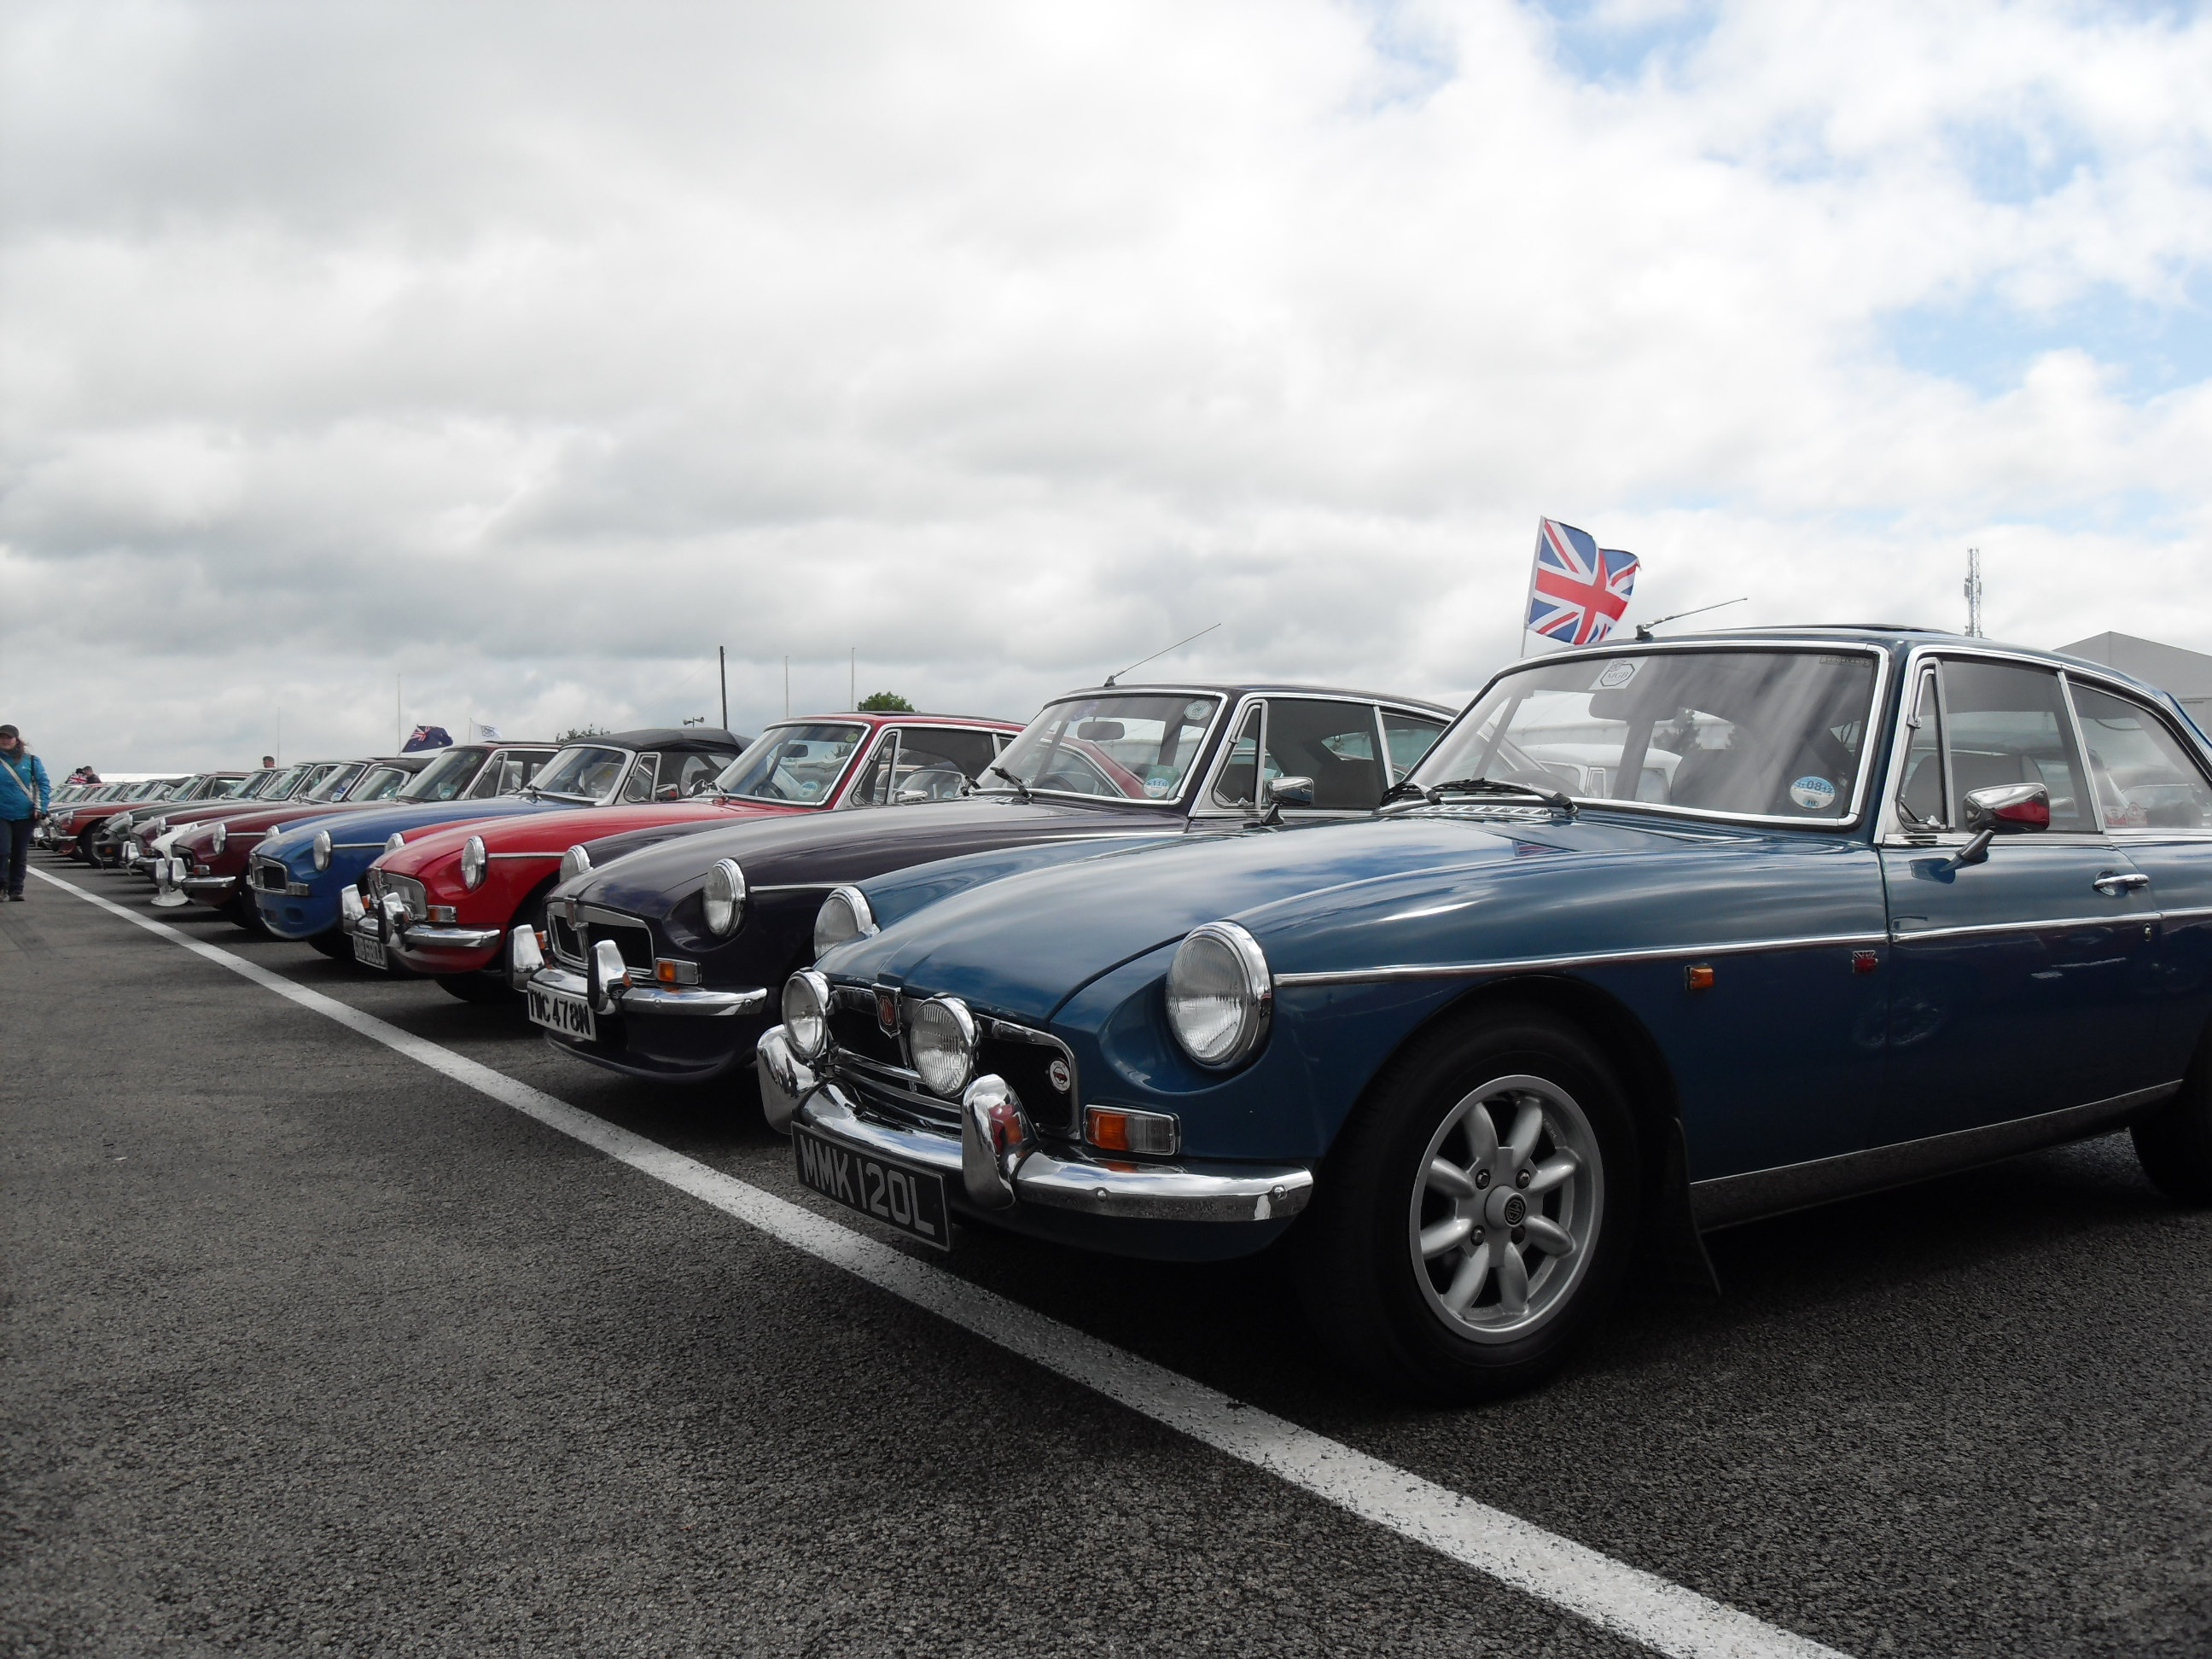 A line-up of MGB's parked at a classic motor show